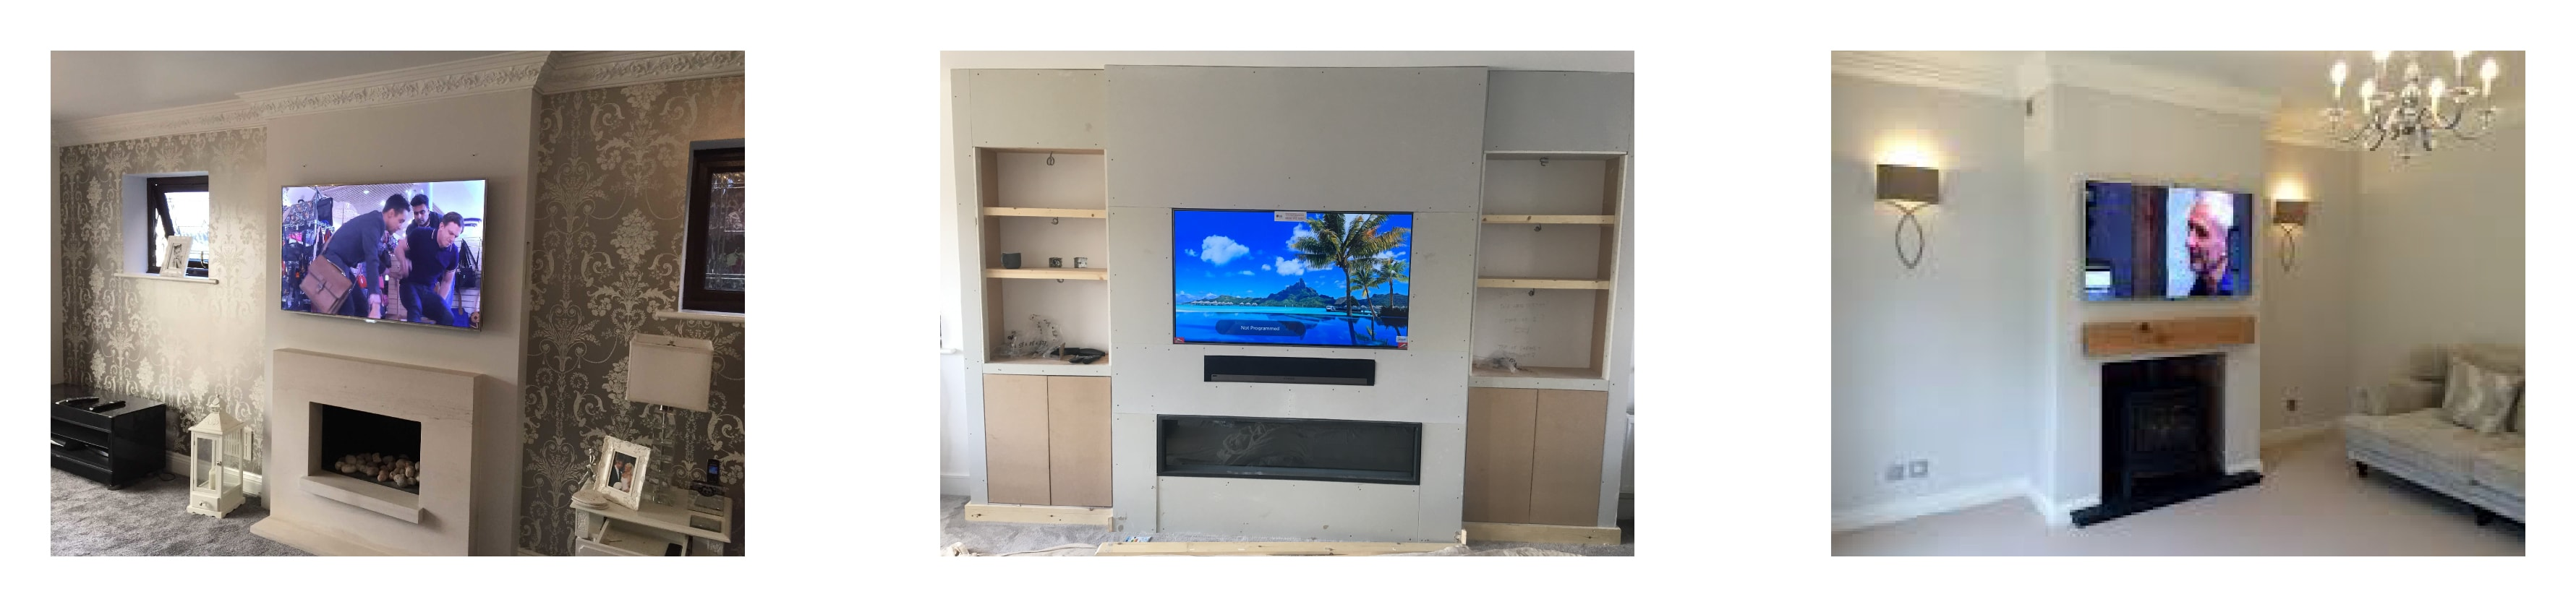 Smart TV installation and mounting in Cheltenham & Gloucester